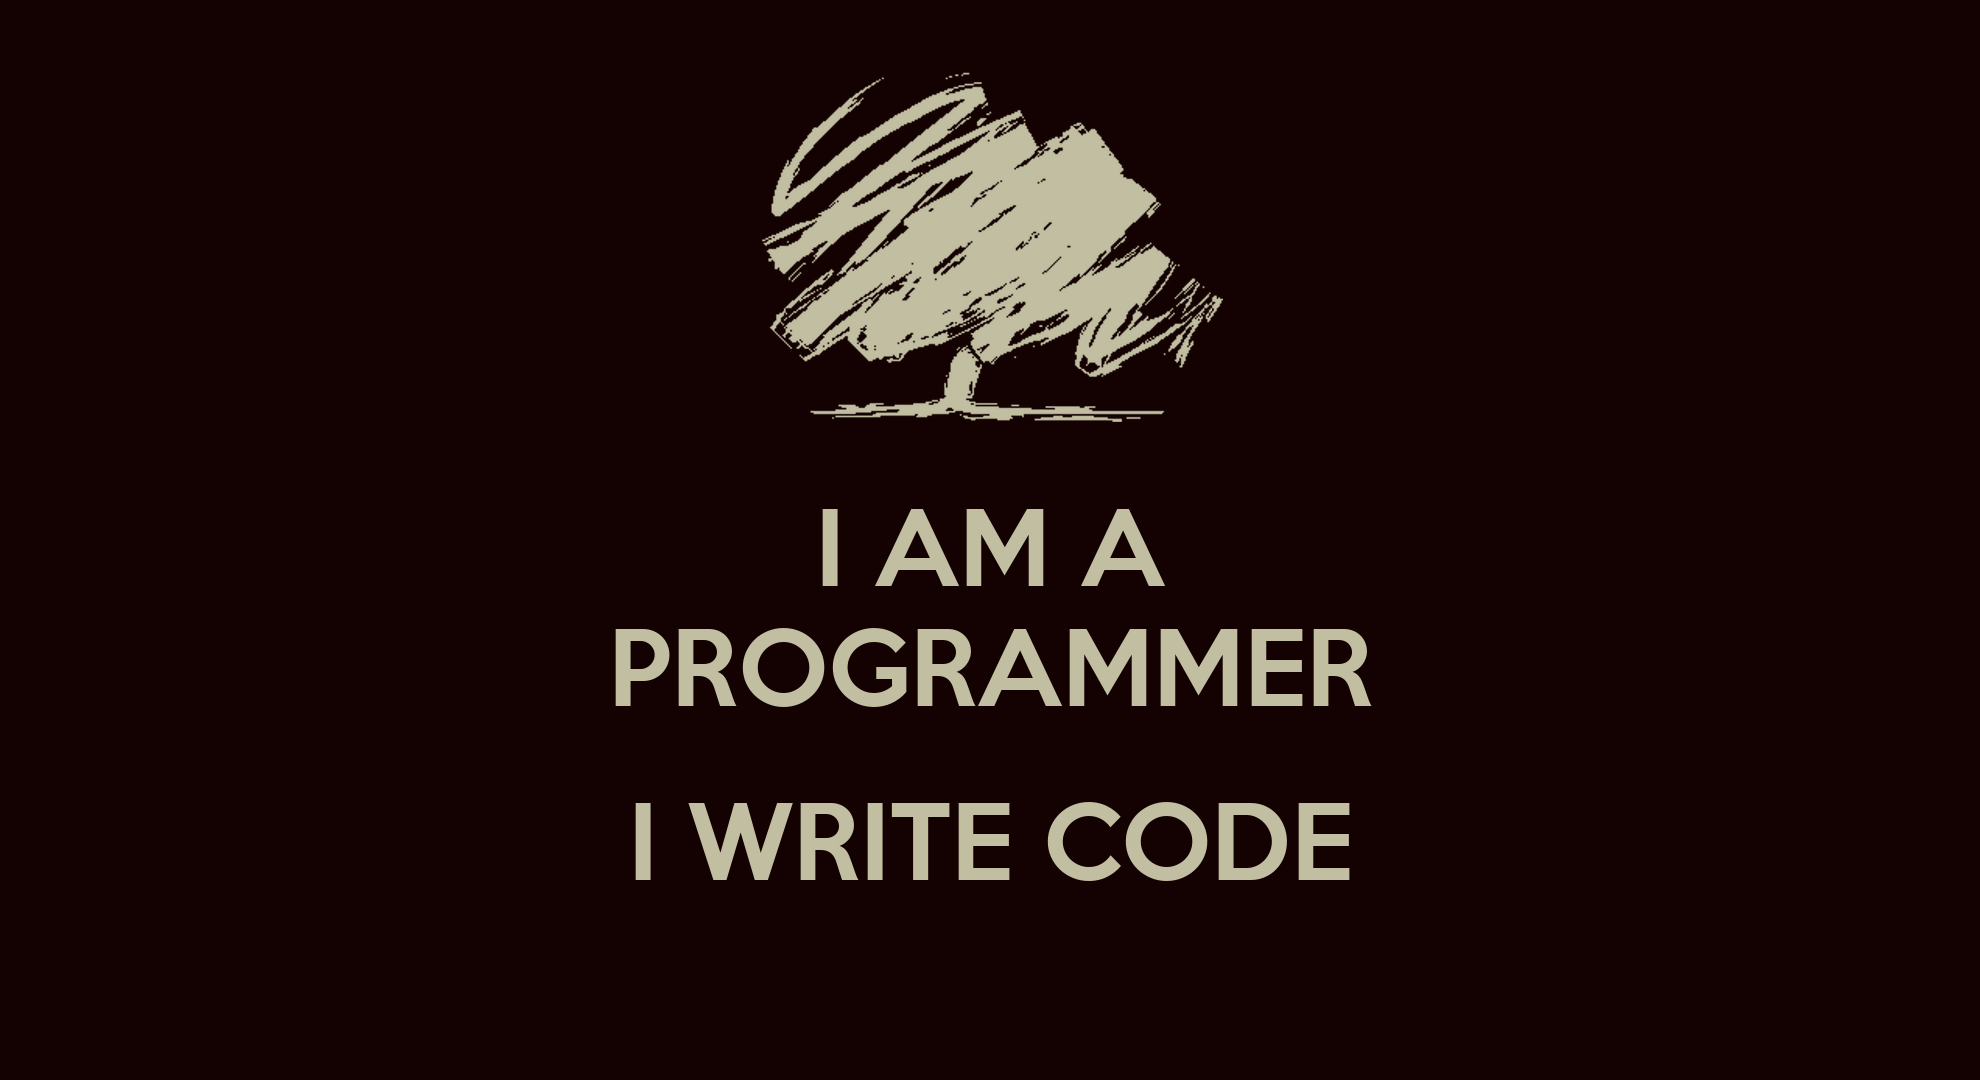 Download Wallpaper Positive Quotes I Am A Programmer I Write Code Poster K Keep Calm O Matic